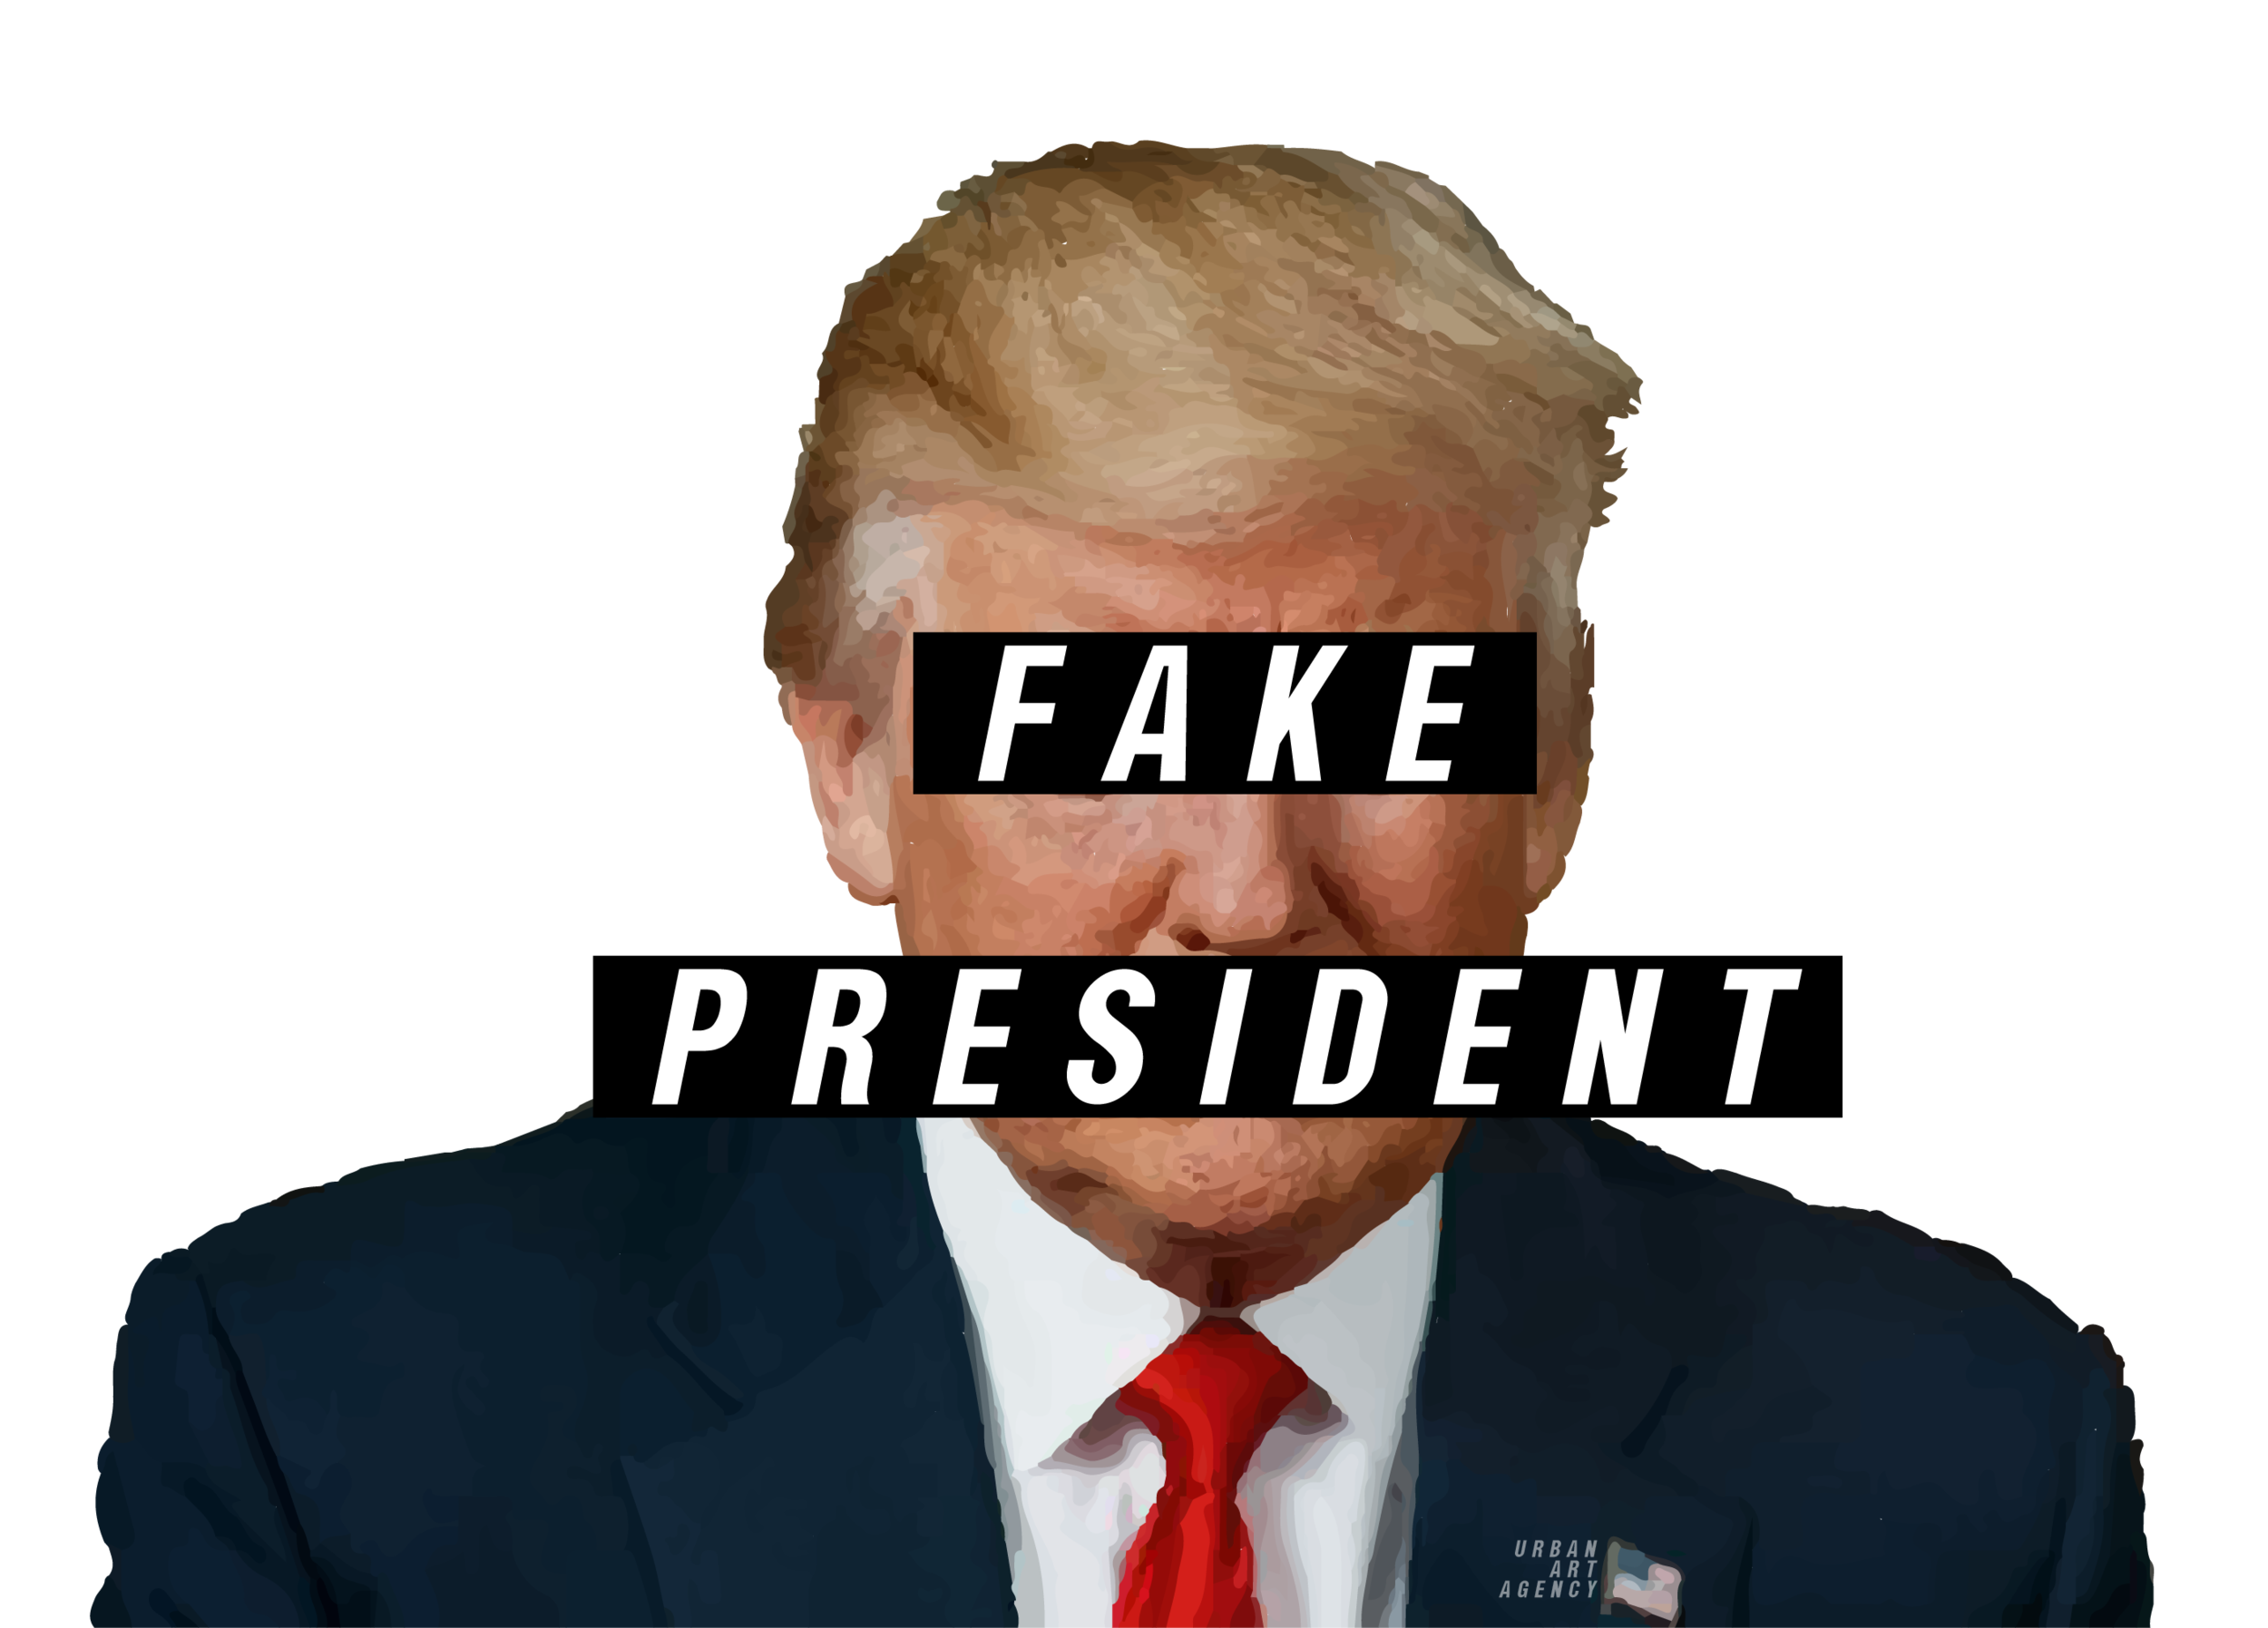 real news, fake president. stickers coming soon...